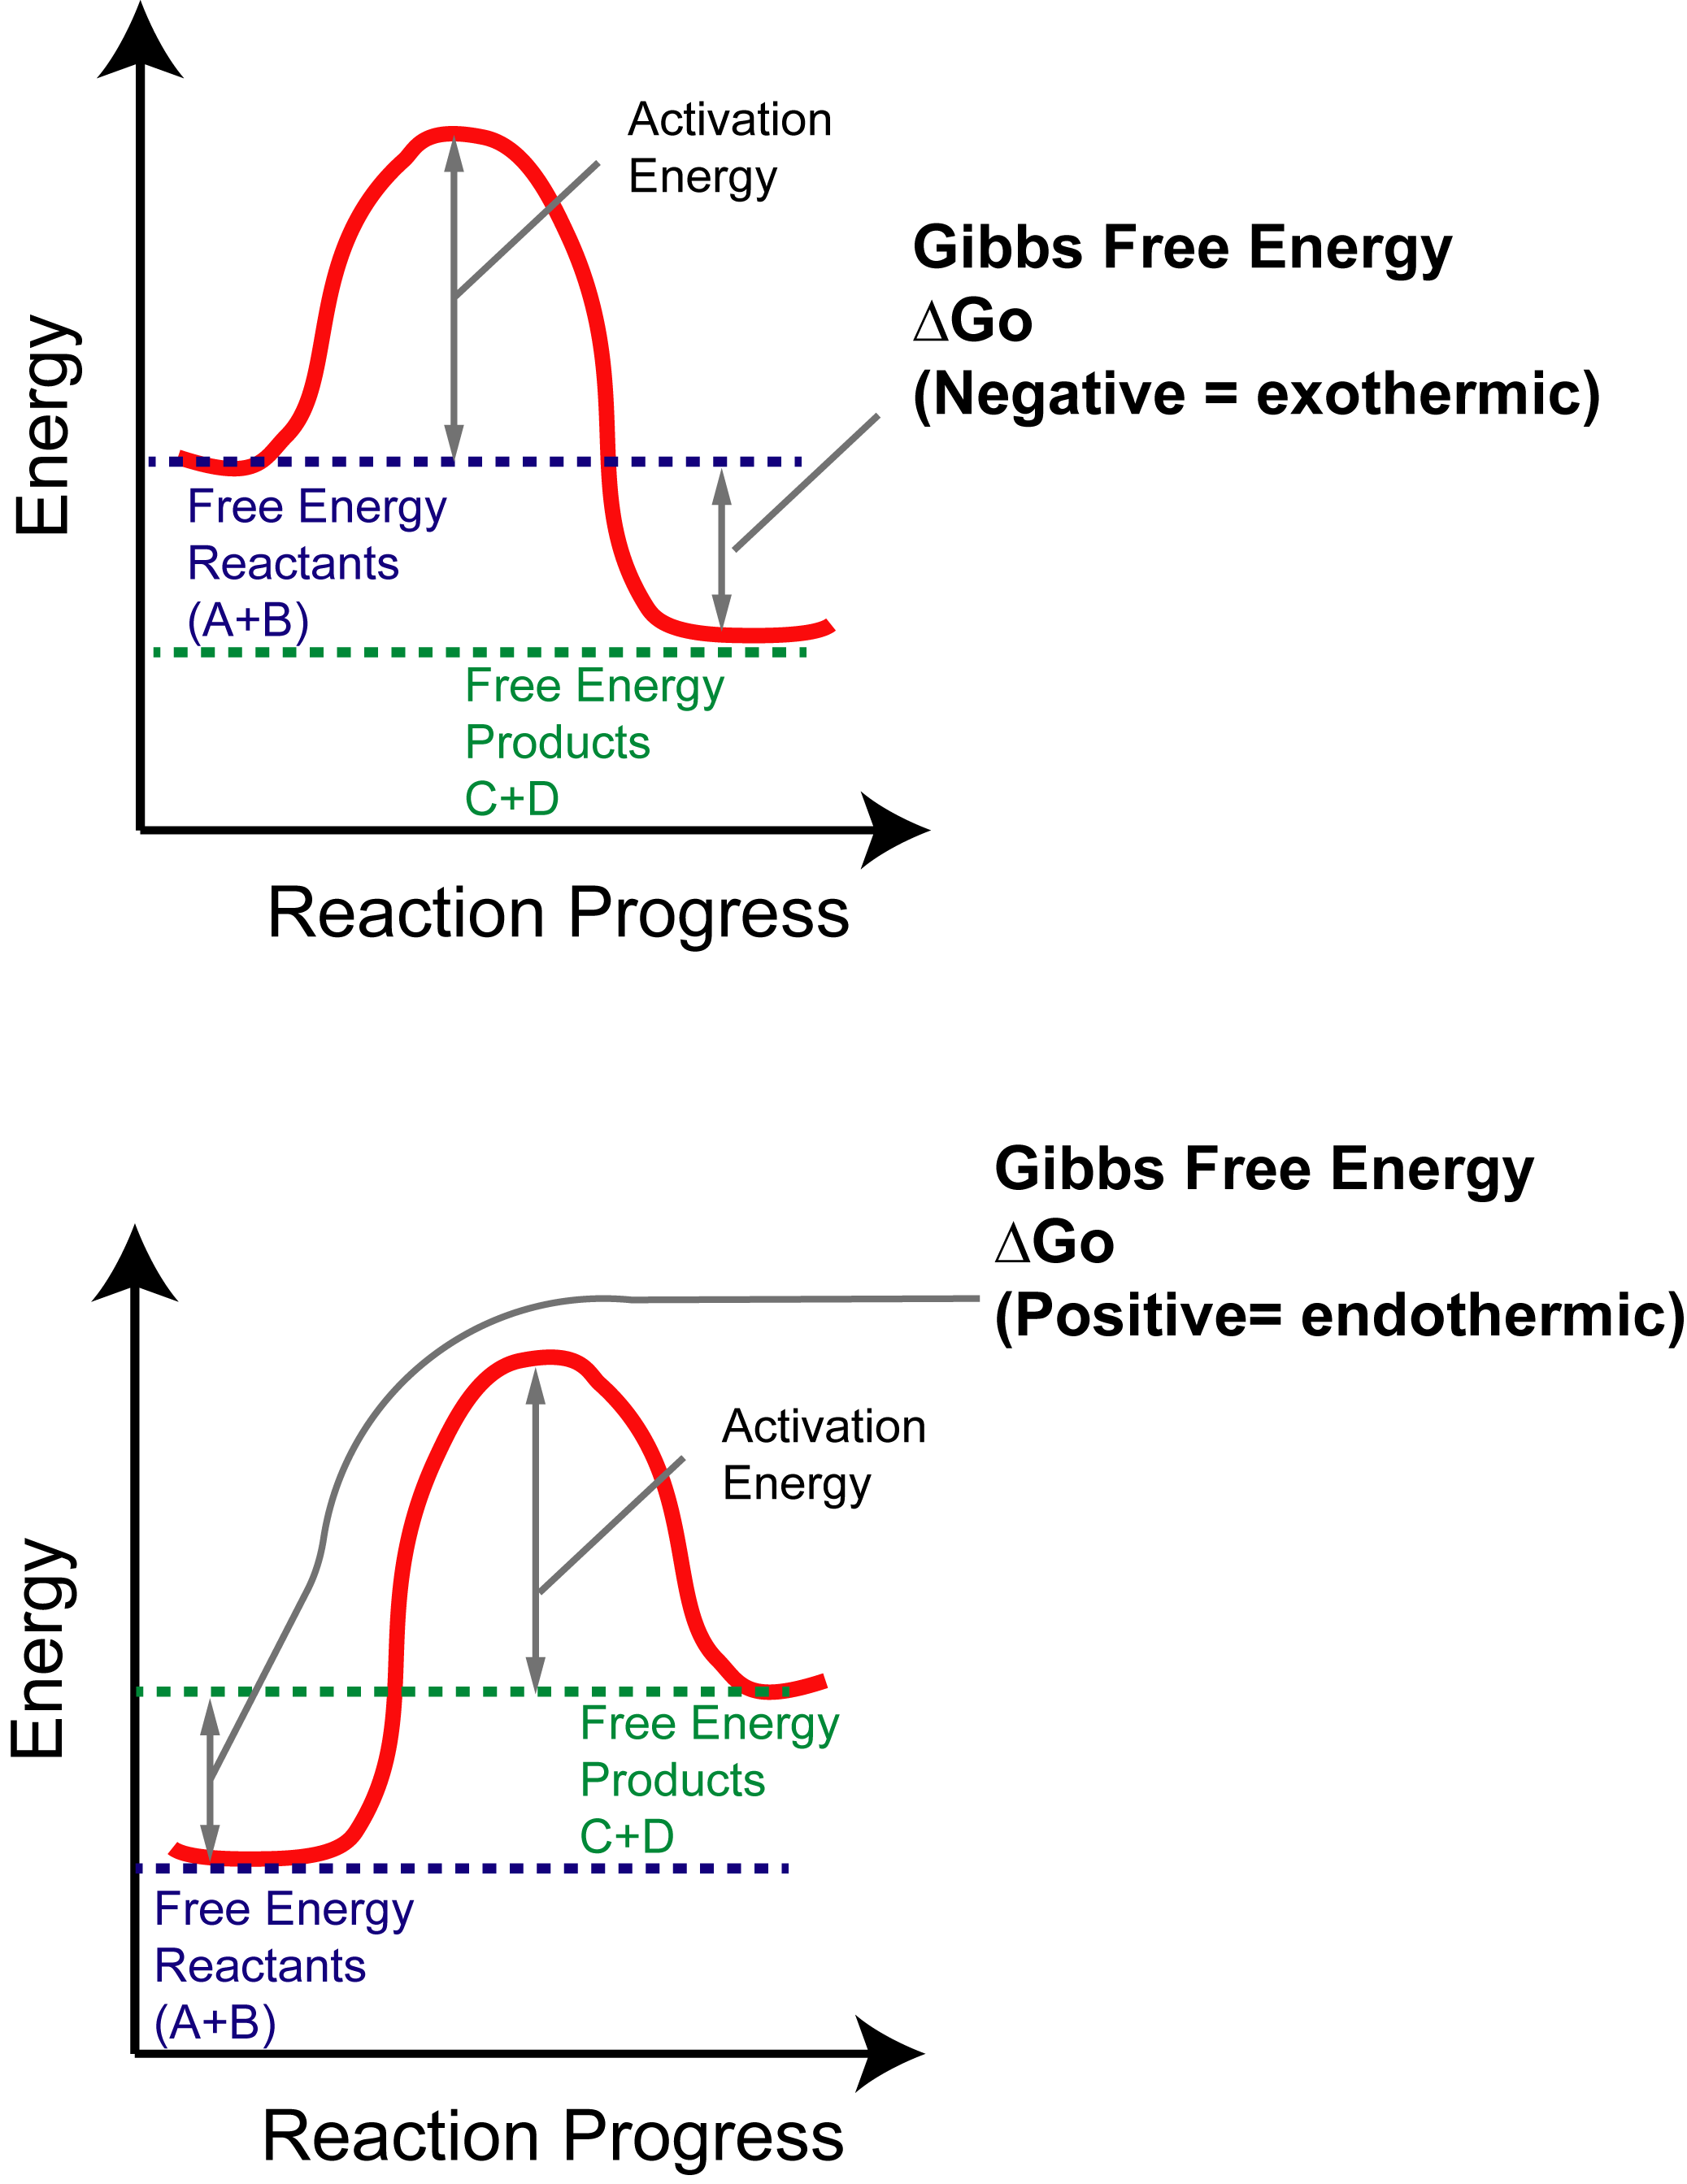 gibbs free energy and activation energy relation